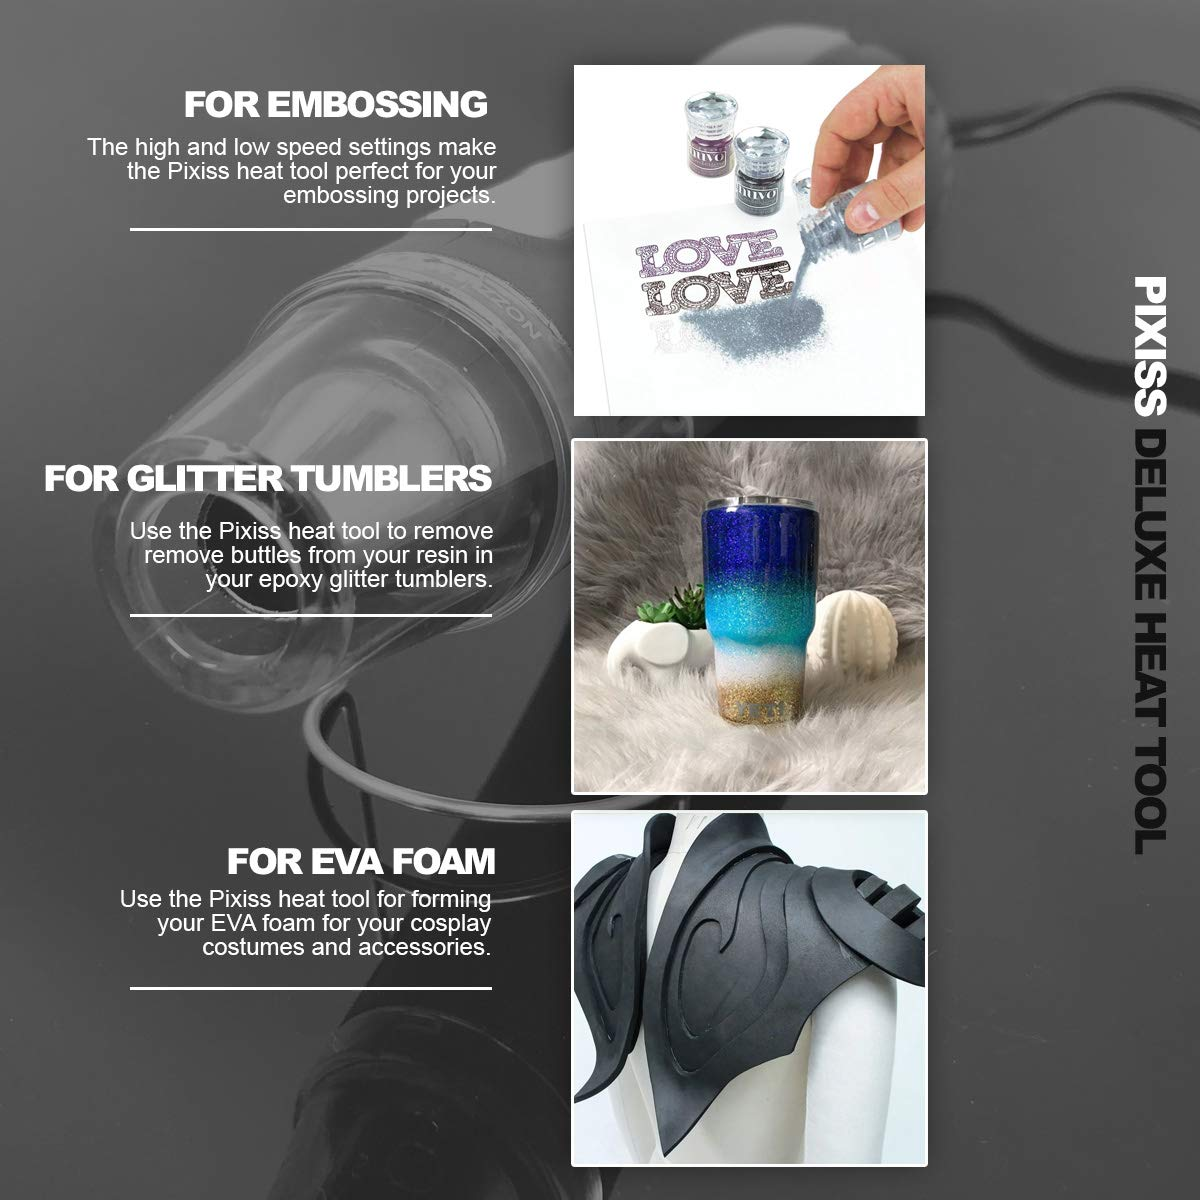 Dual Temperature Speed Professional Heat Tool for EVA Foam Cosplay Shrink Wrap Candles Crafts Embossing Arts Pixiss Heat Tool Embossing Heat Gun